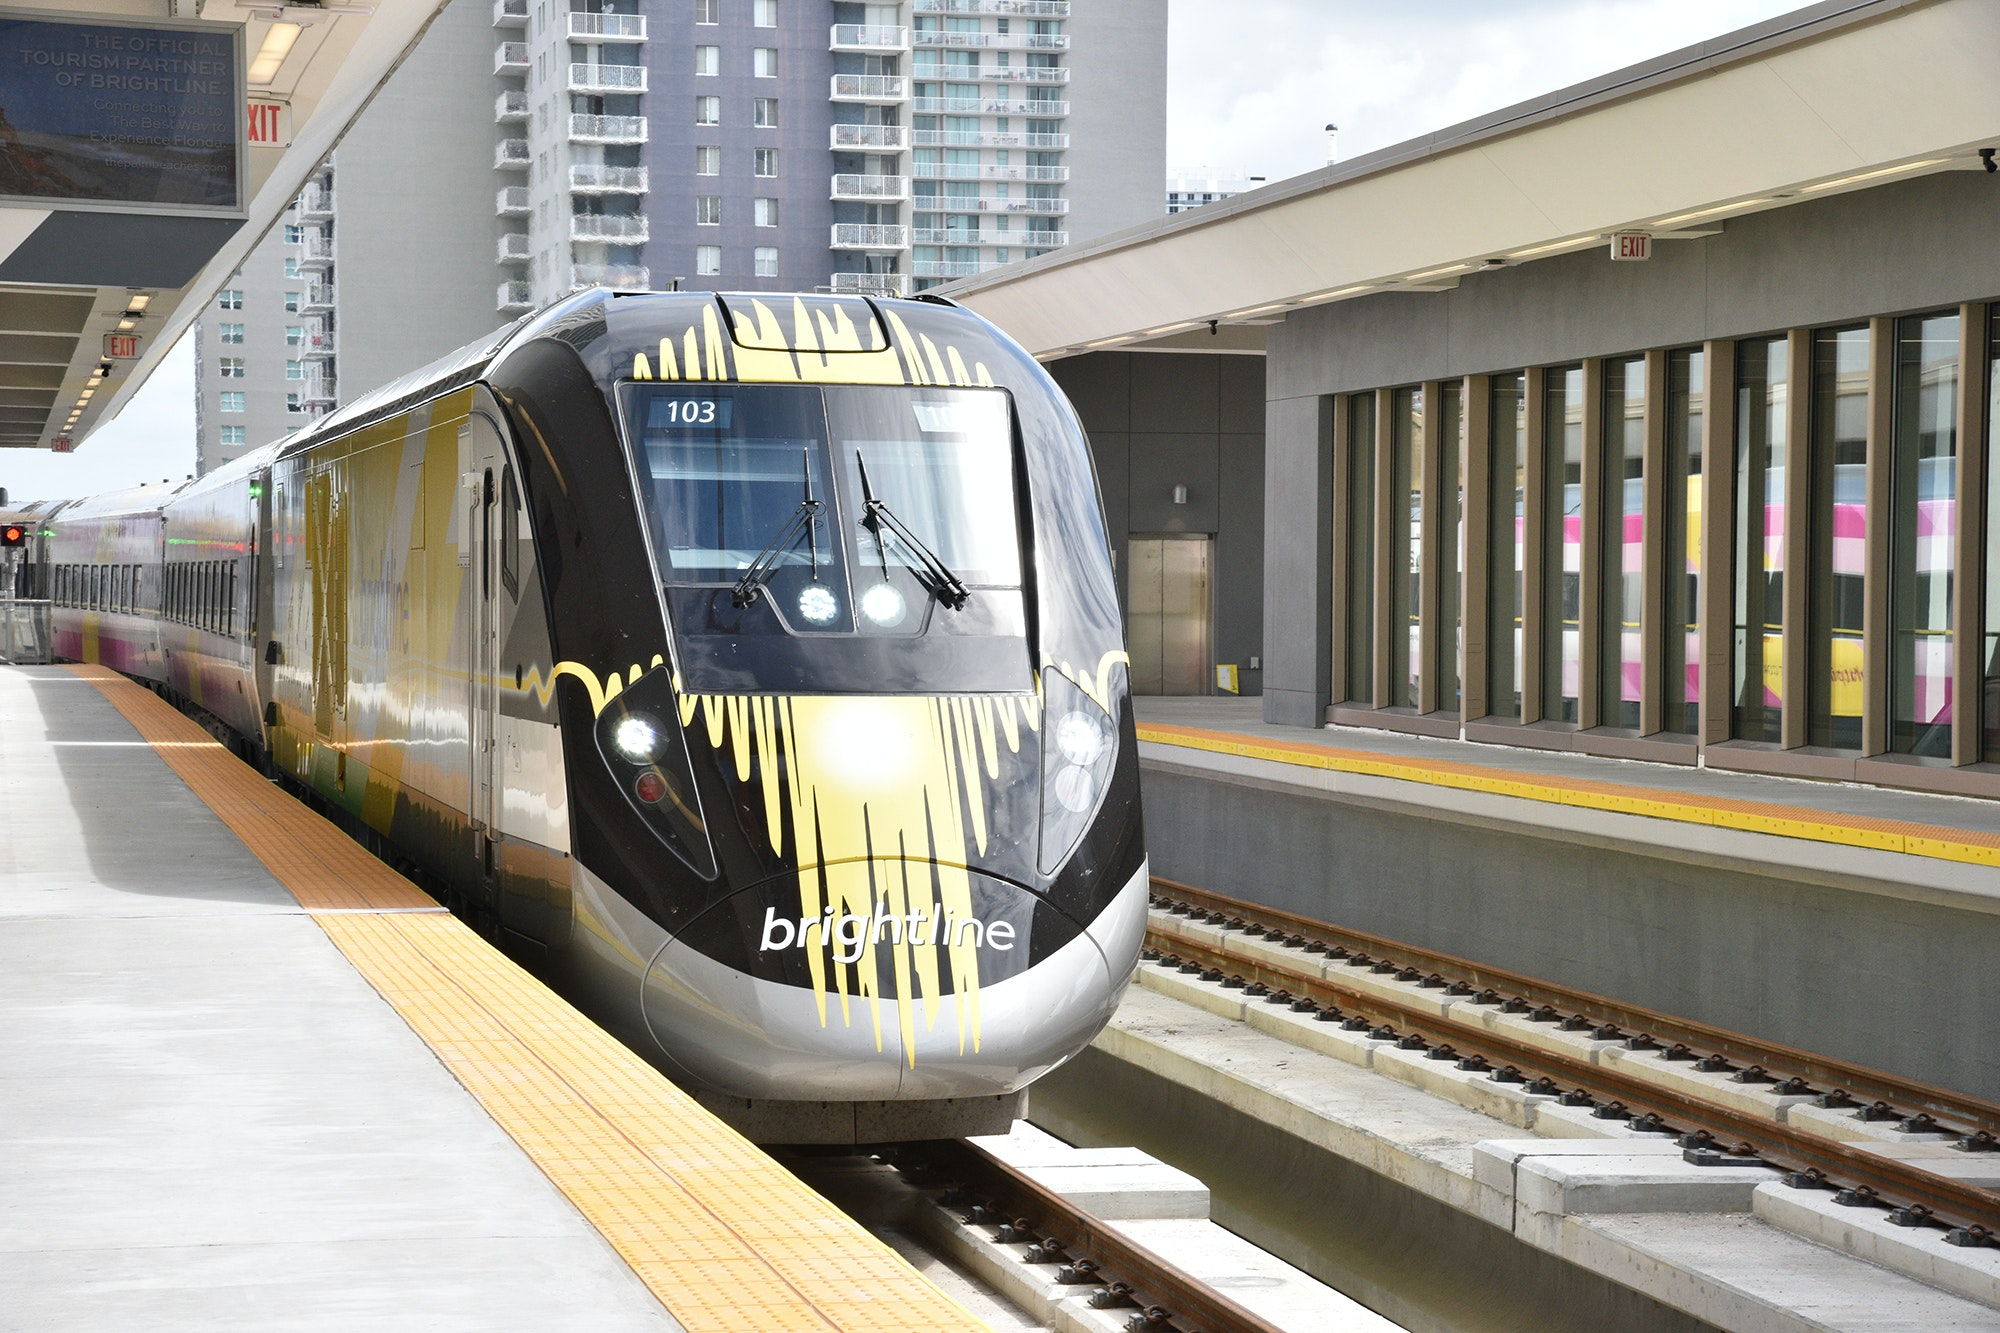 The Brightline train connecting Miami to West Palm Beach opened in May 2018. It will be extended to serve Orlando by 2021.